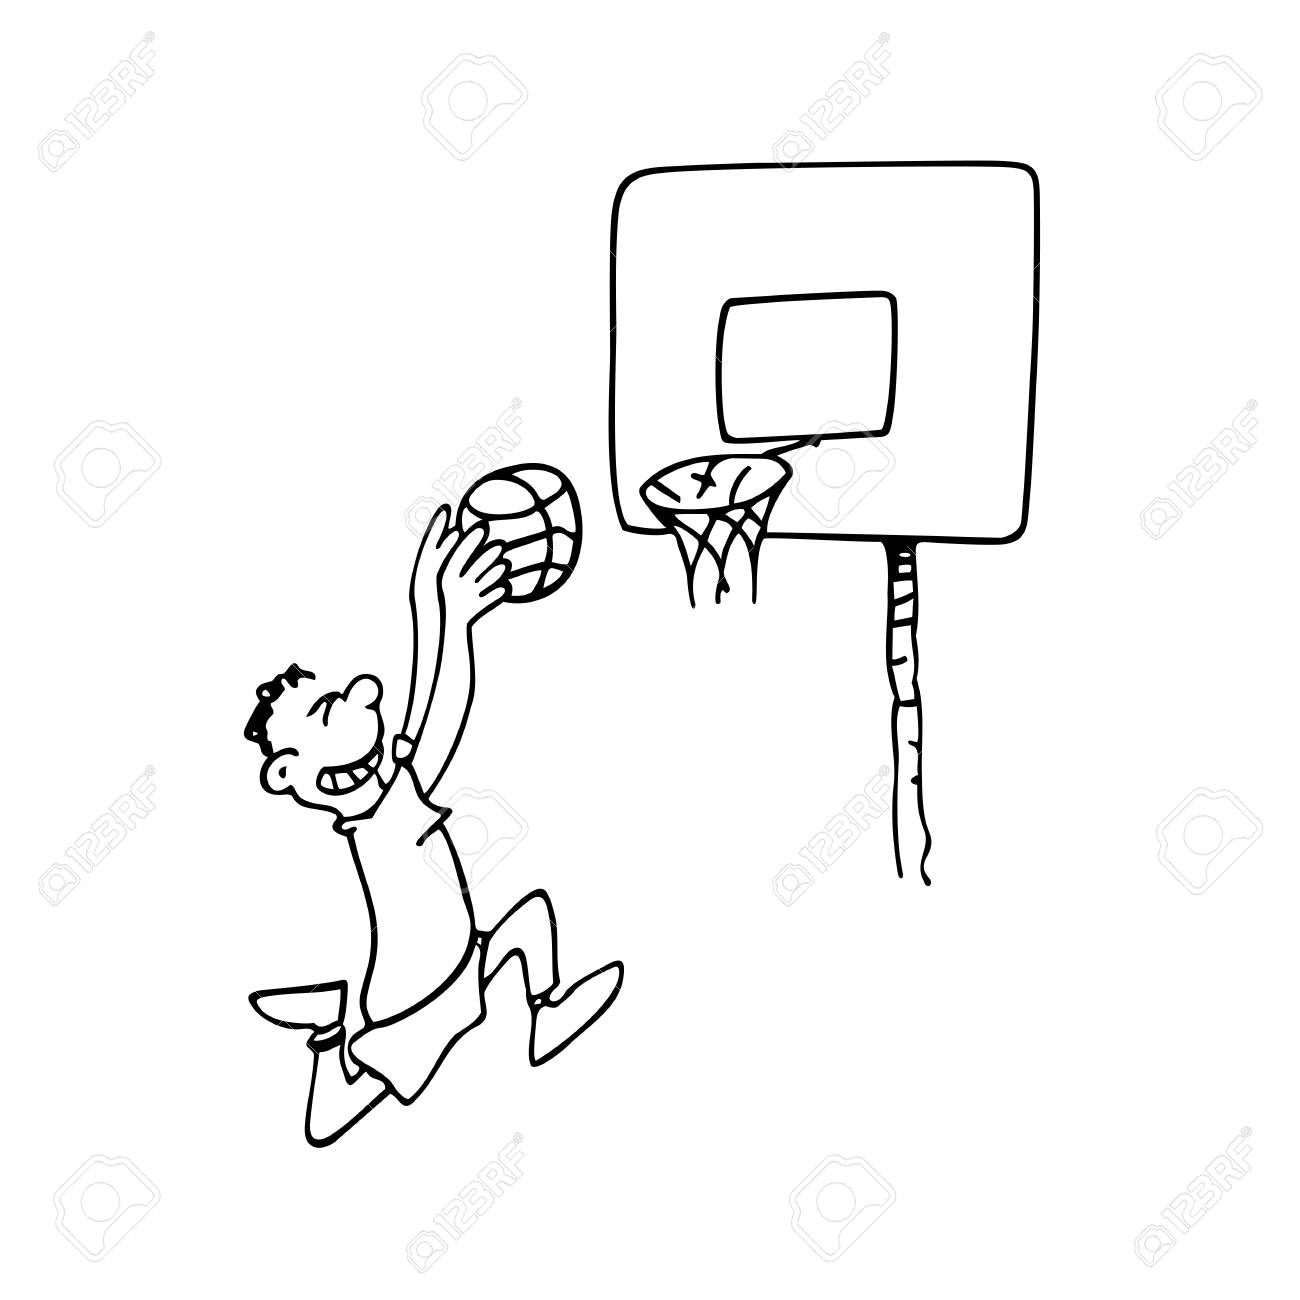 Basketball Net Drawing At Getdrawings